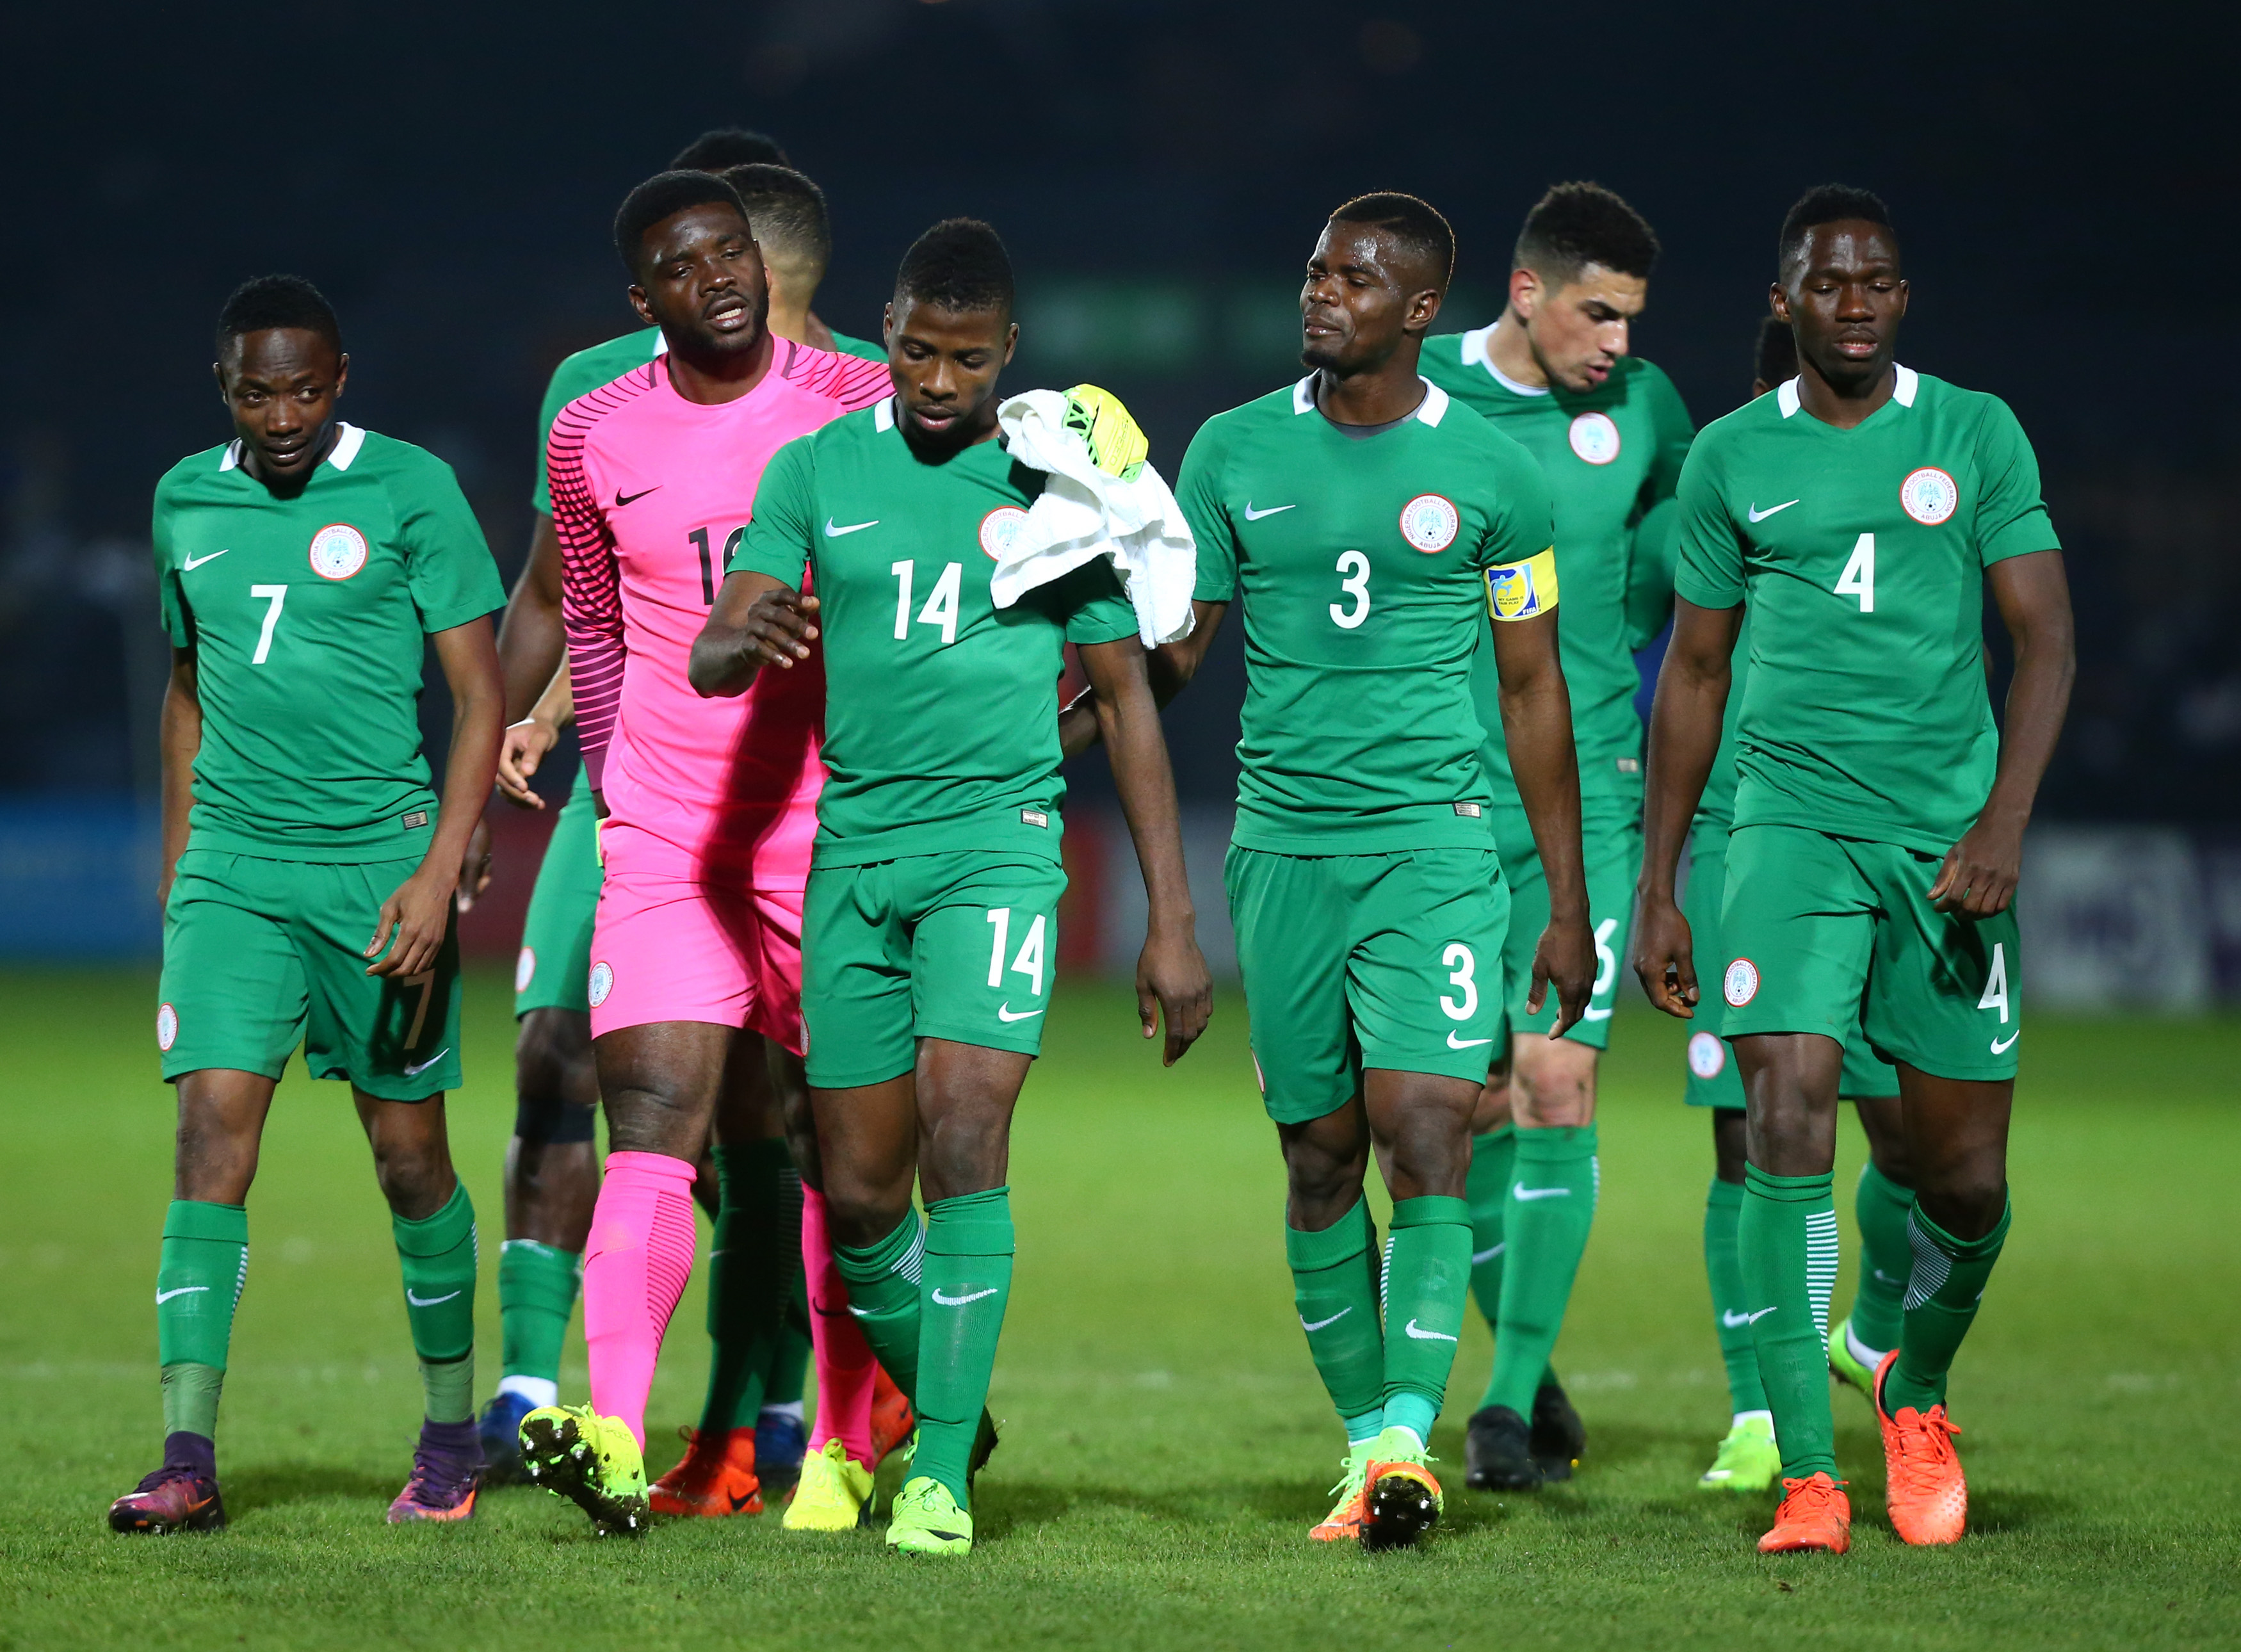 c5d4ea65948 England will no longer host Eagles' matches, says Rohr | The ...